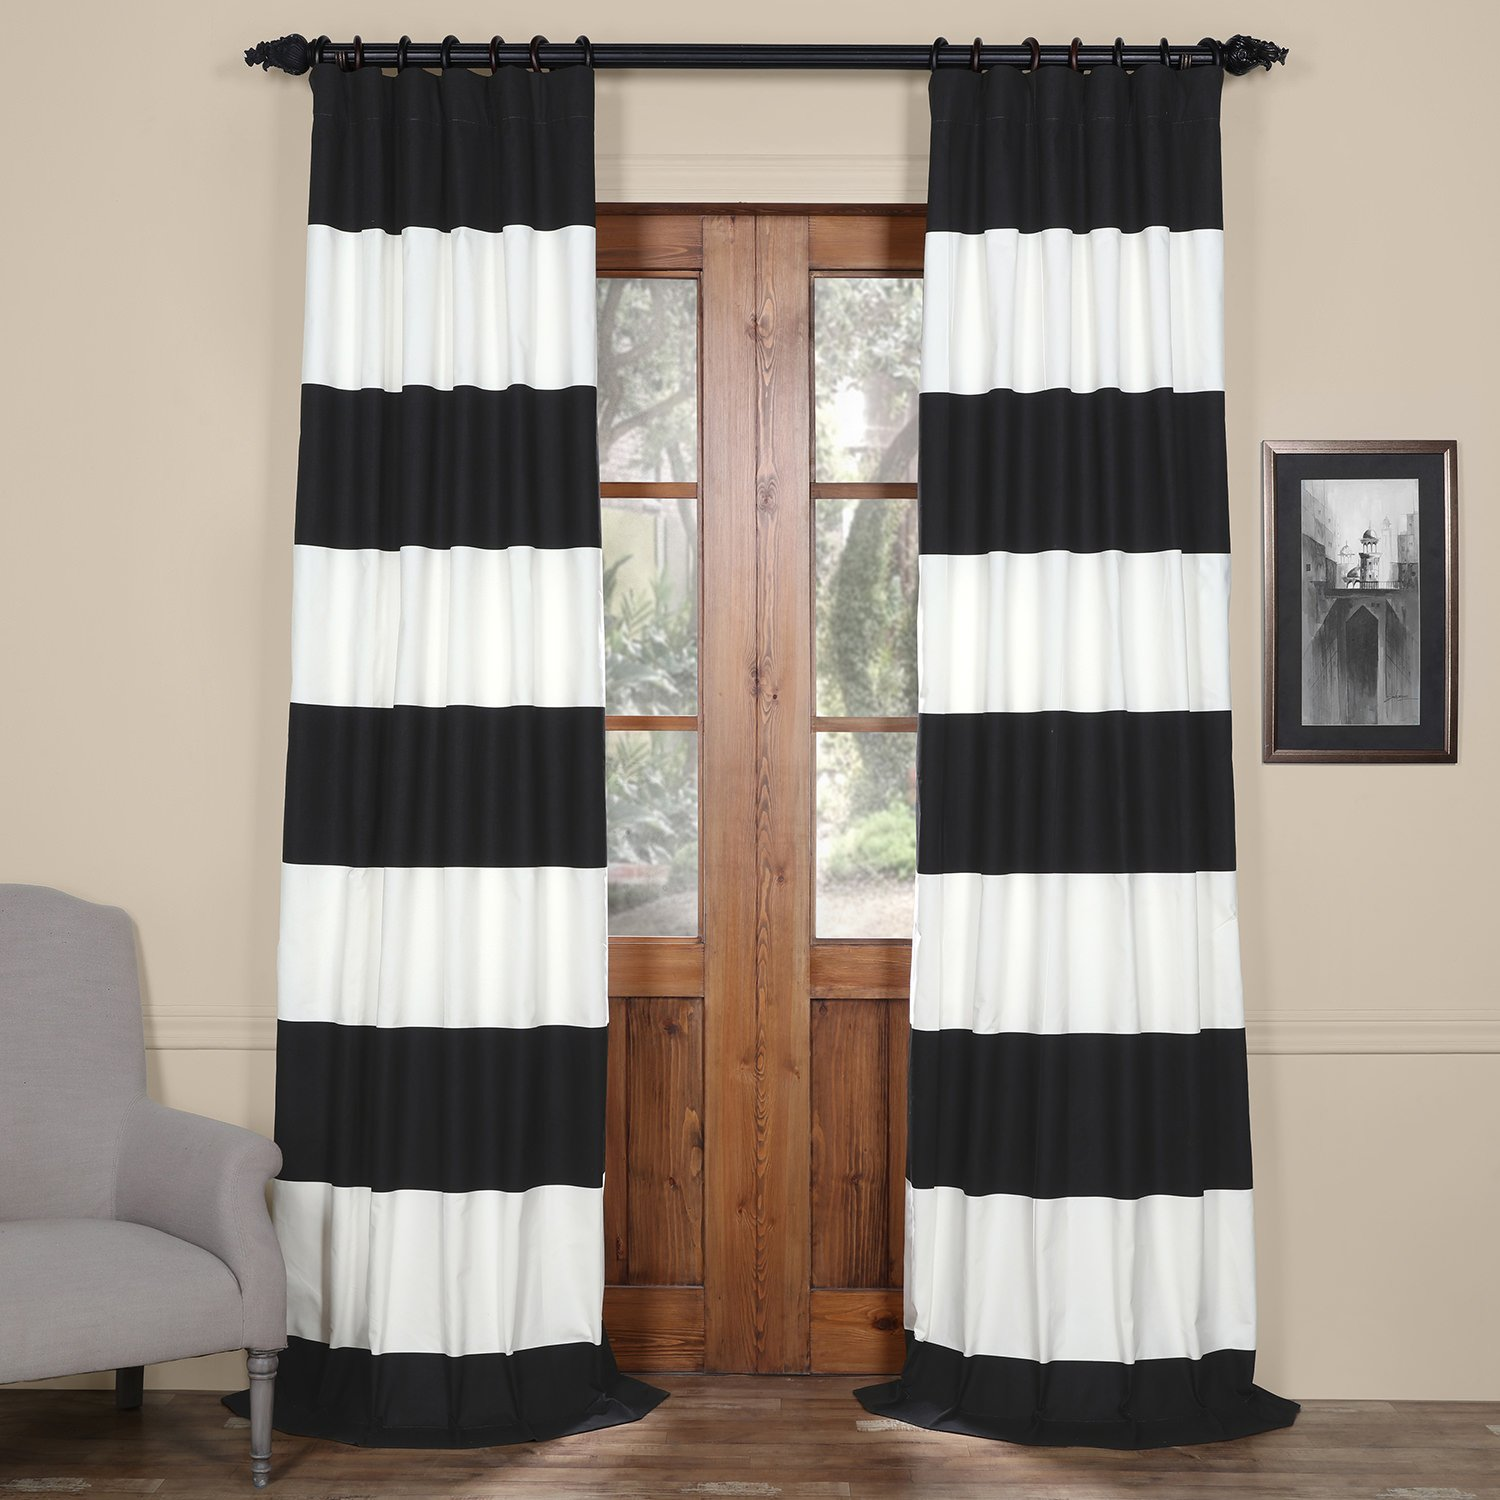 Half Price Drapes PRCT-HS06-96 Horizontal Stripe Cotton Curtain, Onyx Black & Off/White